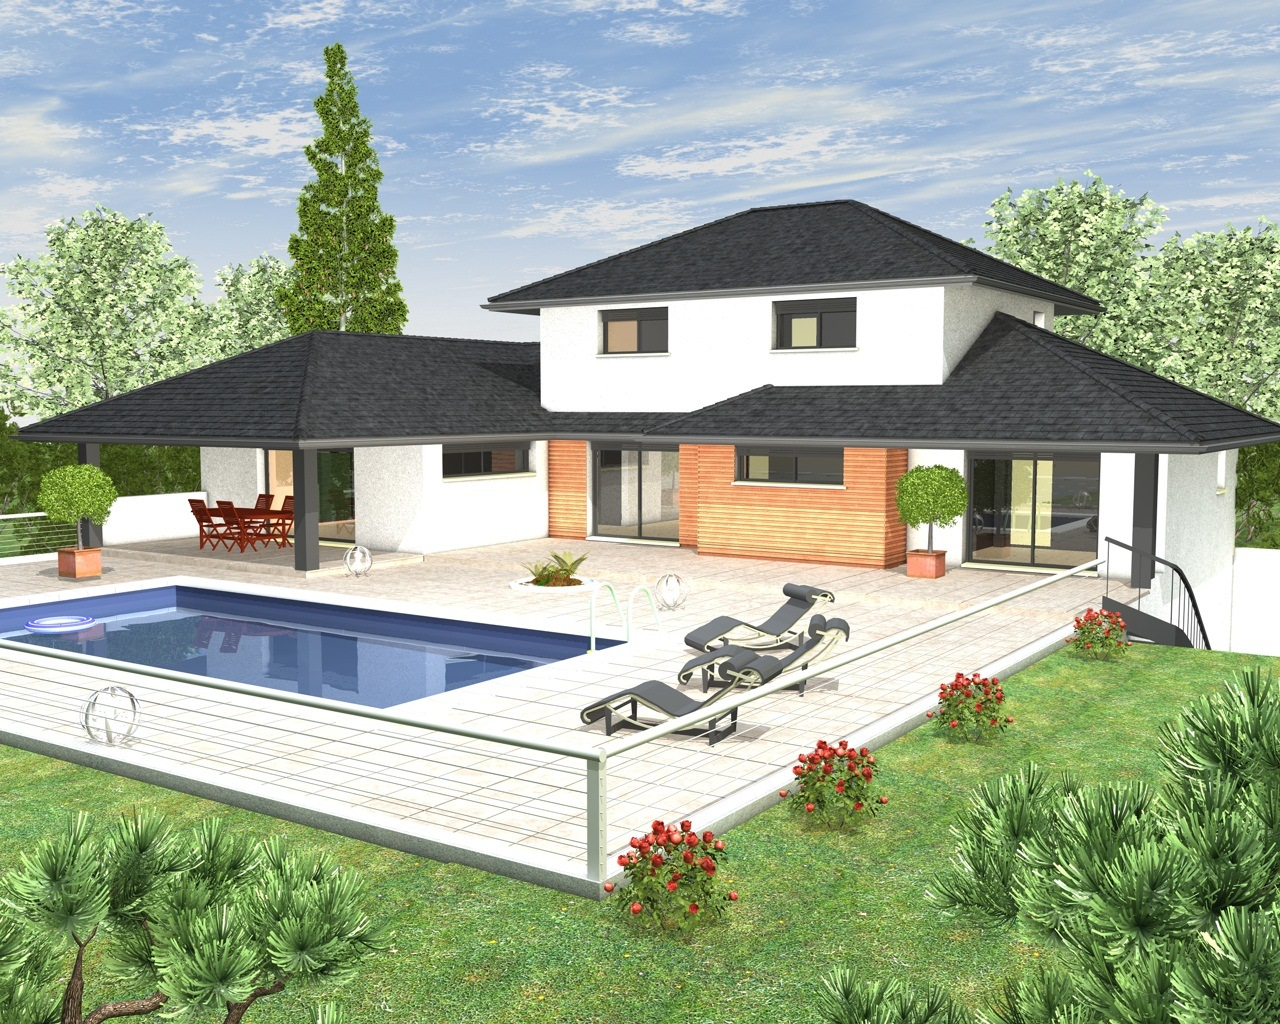 Mod les et plans de maisons mod le tage inspiration for Plans d architecture maison